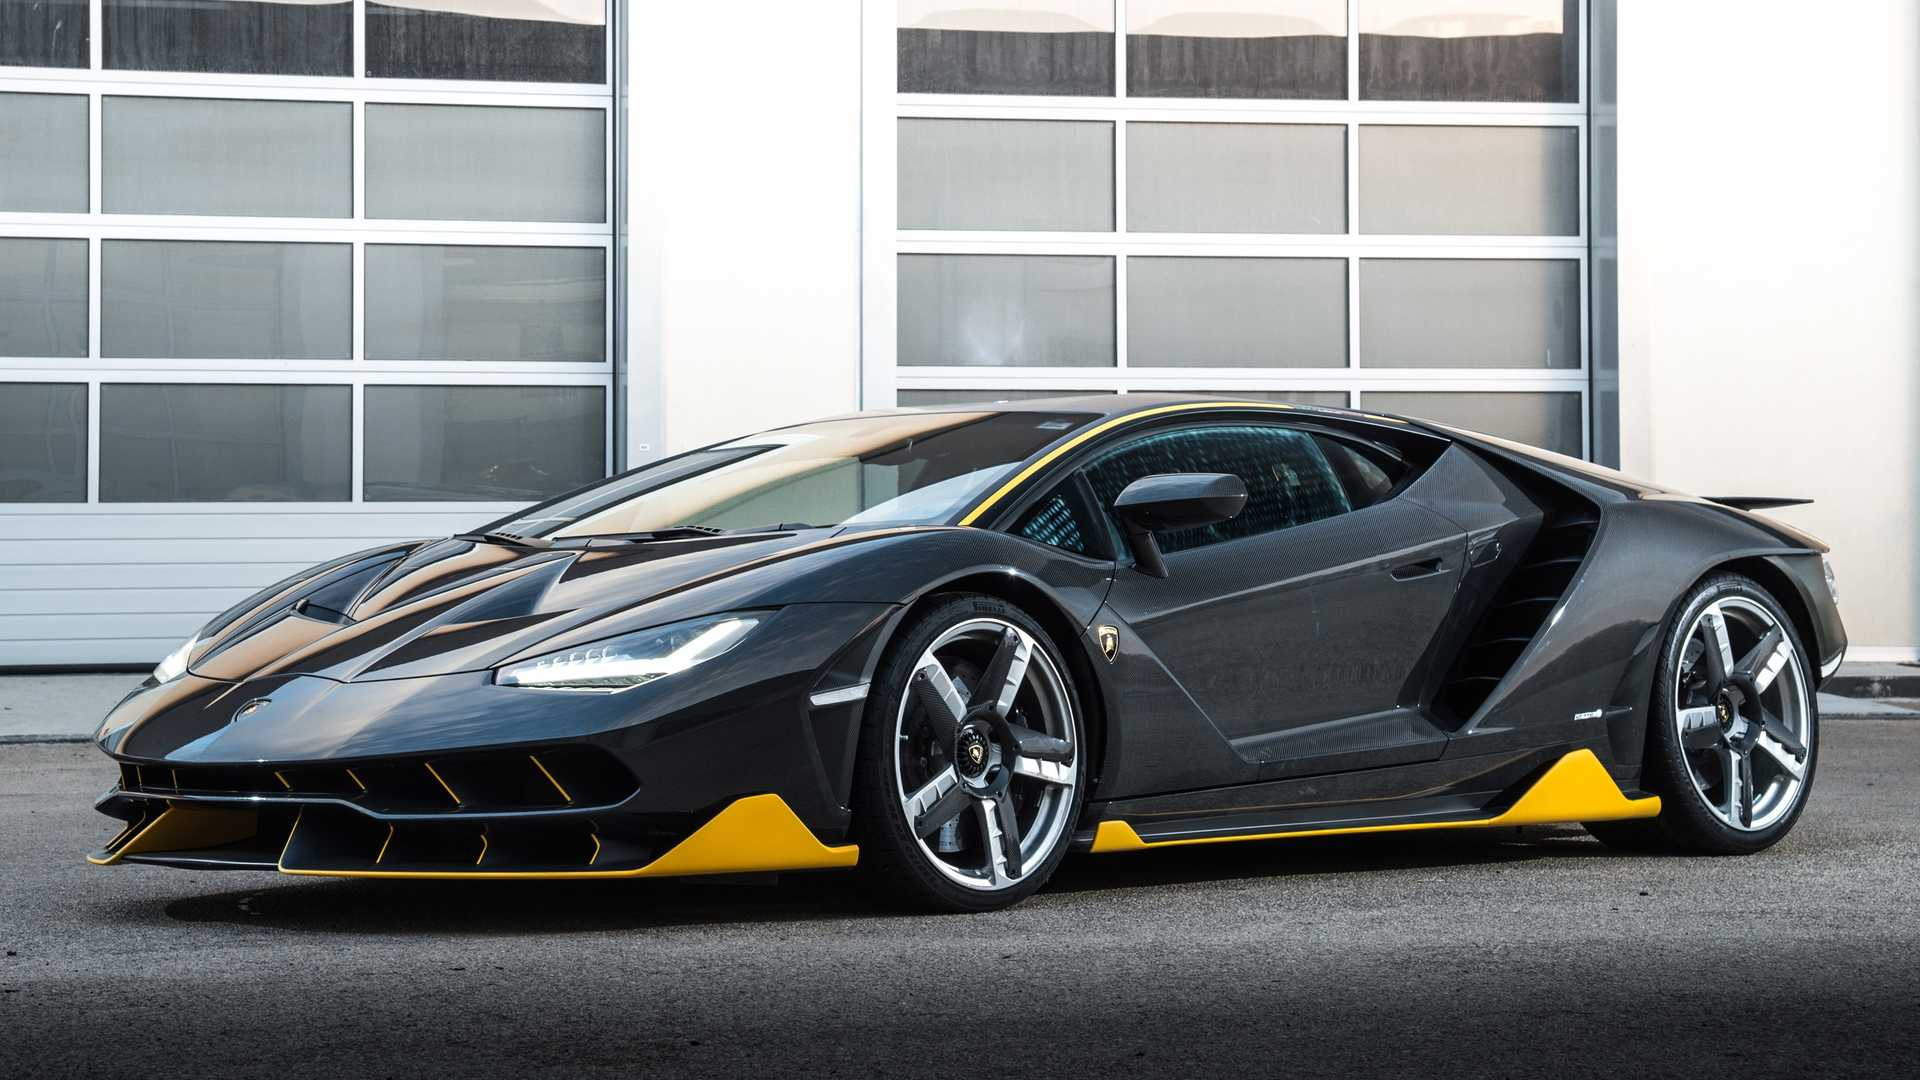 39 All New Lamborghini 2020 Models New Model And Performance